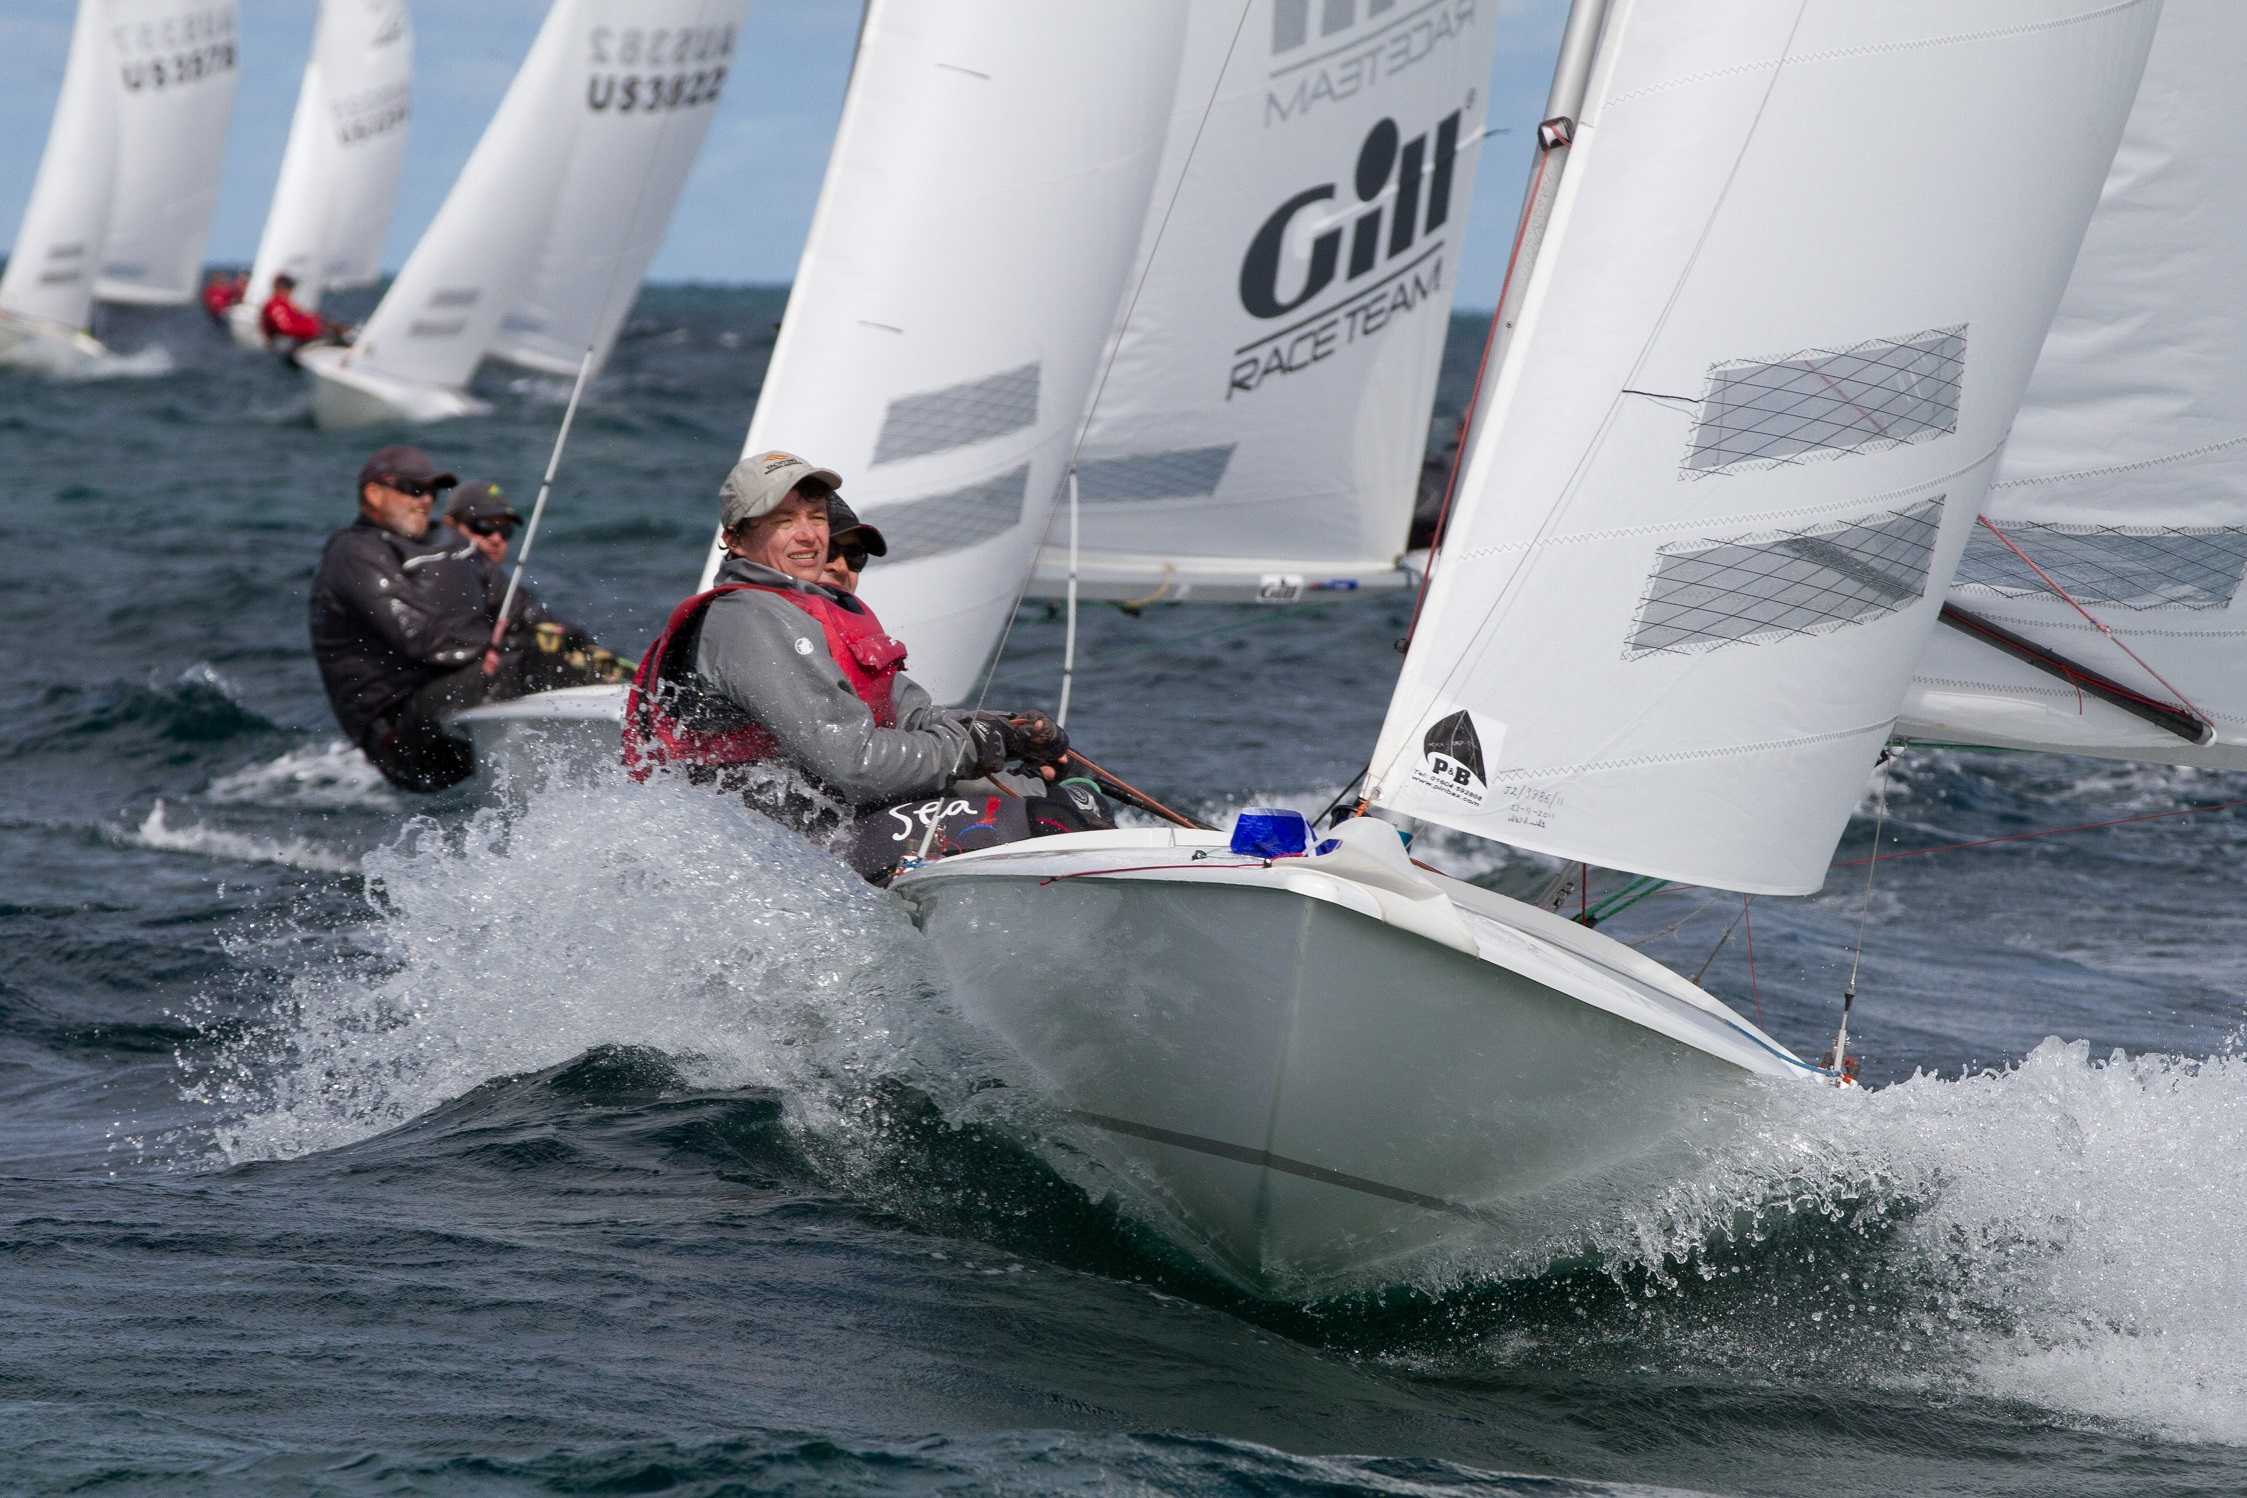 Defending champions Nick and Janet Jerwood won the second last race of the series ahead of eventual winners